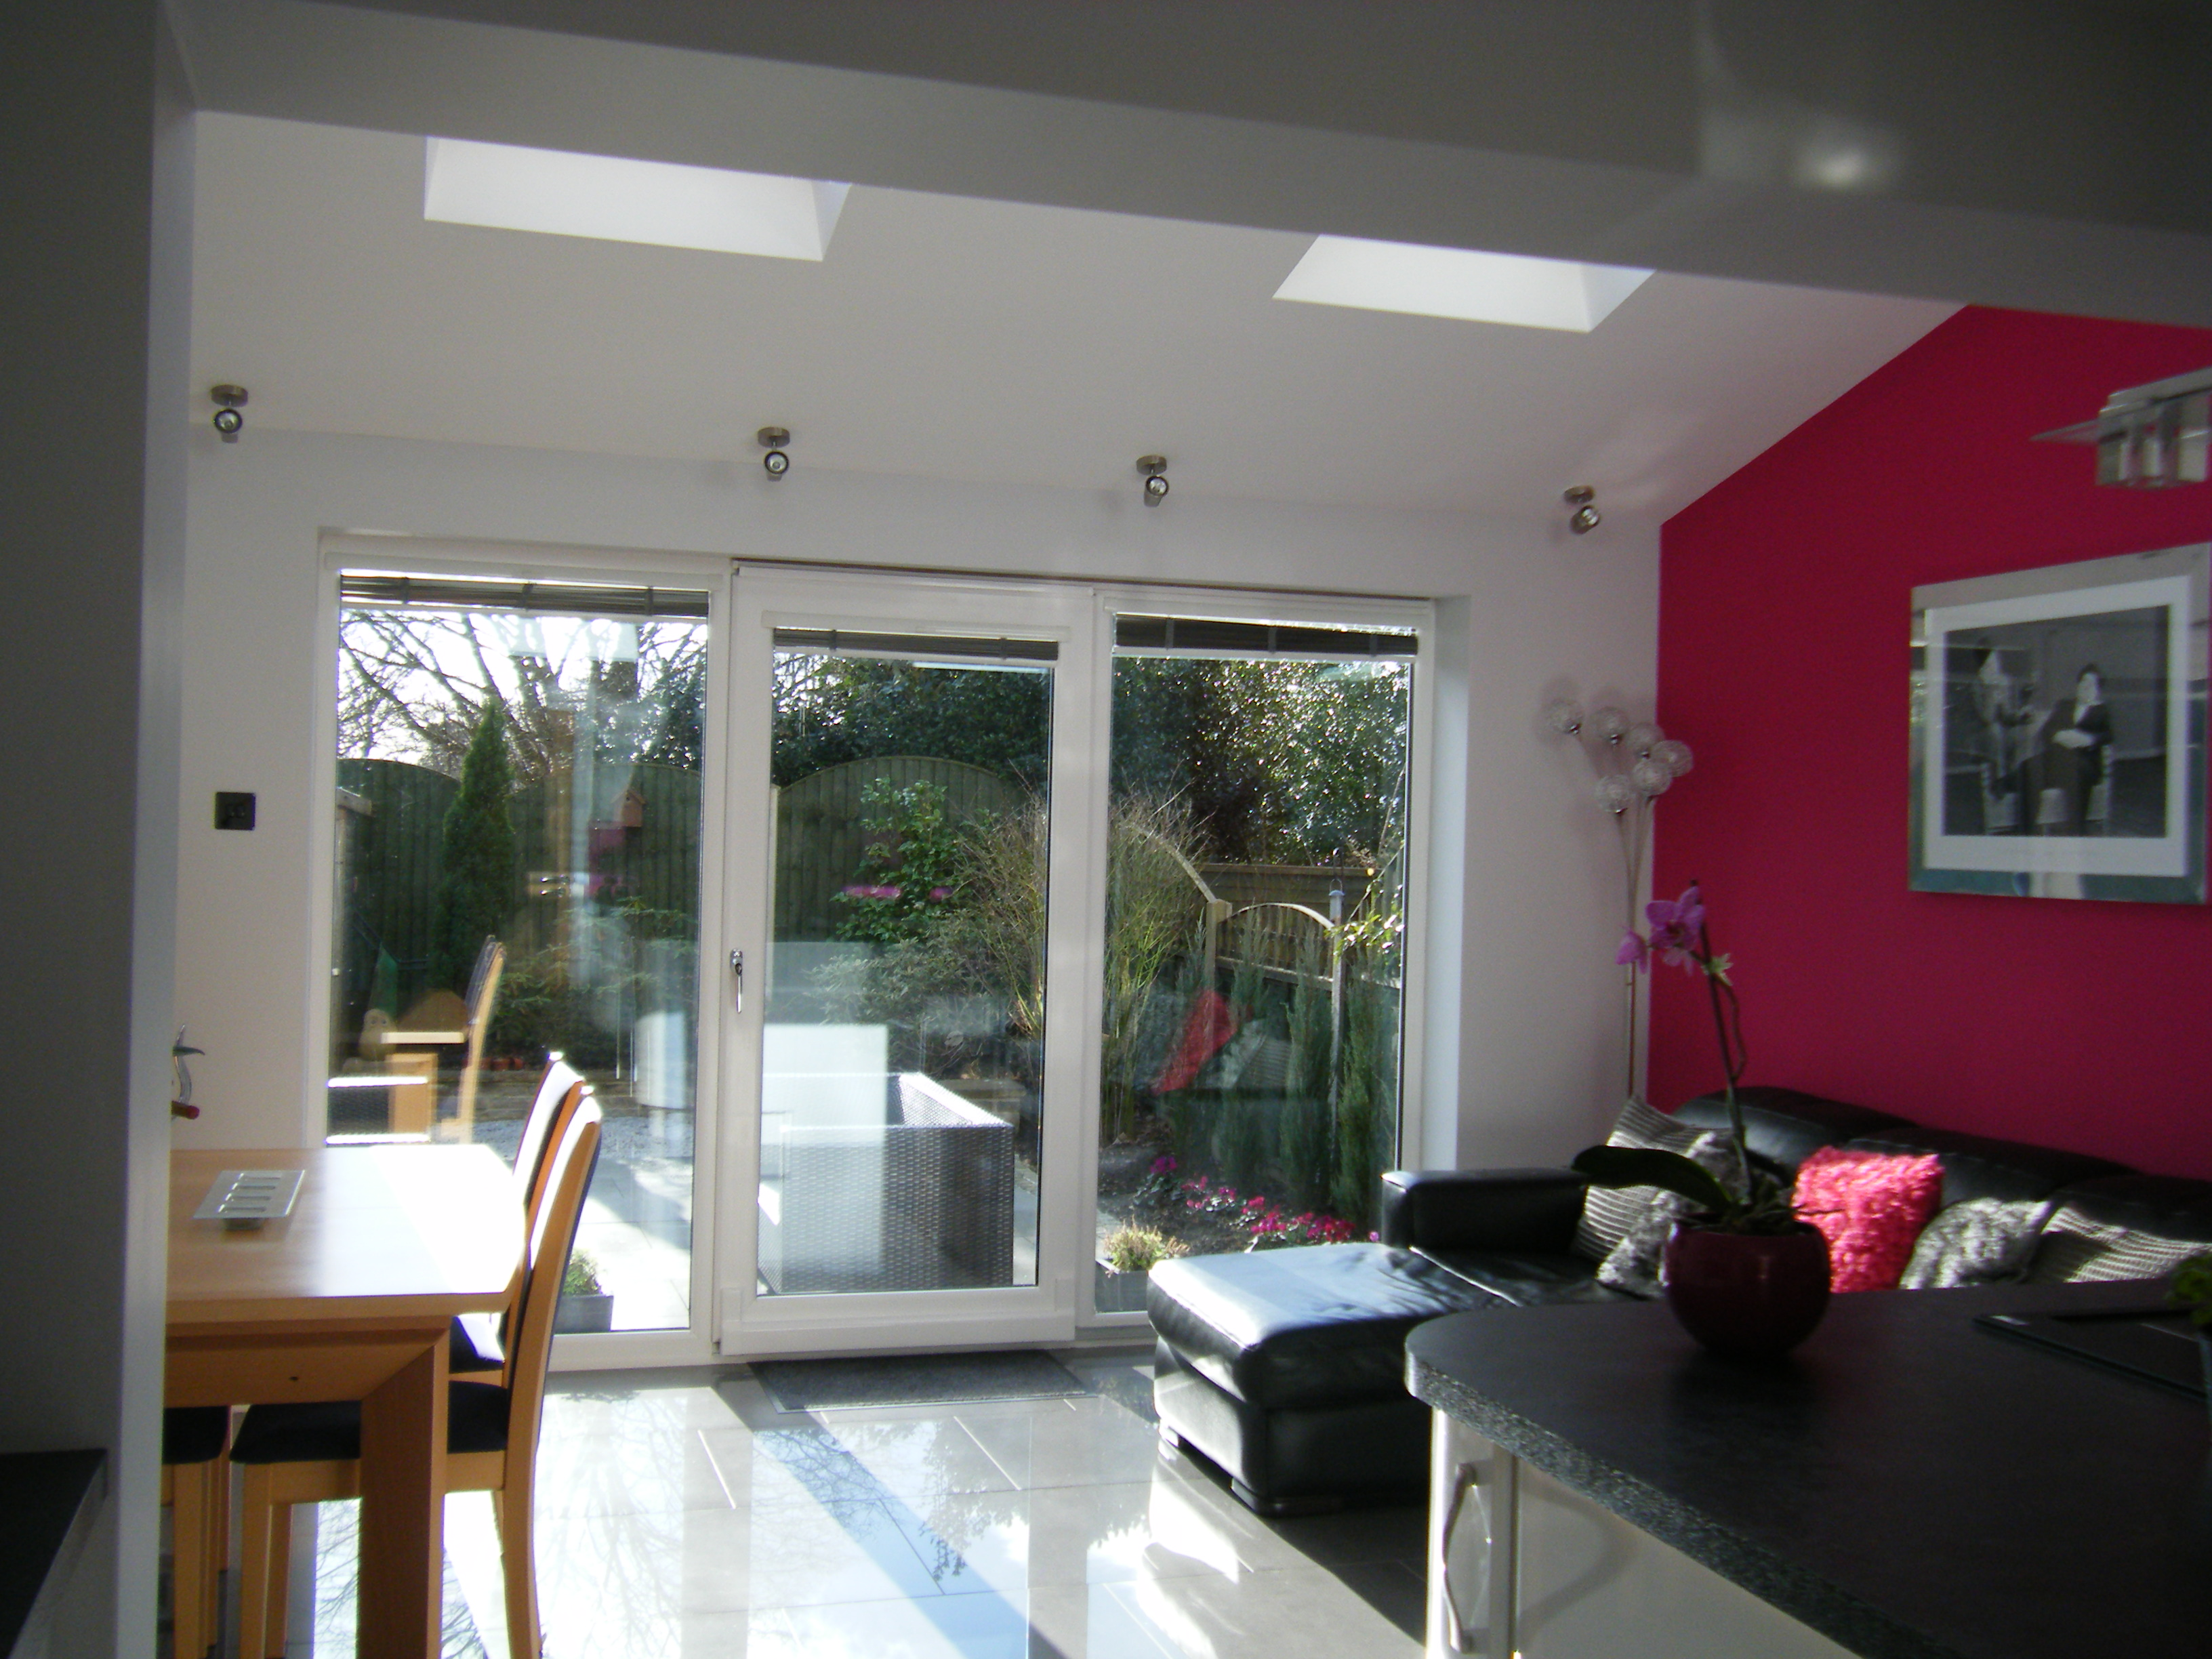 Single storey rear extension at spondon derby creation building design building design in derby - Inside house ...